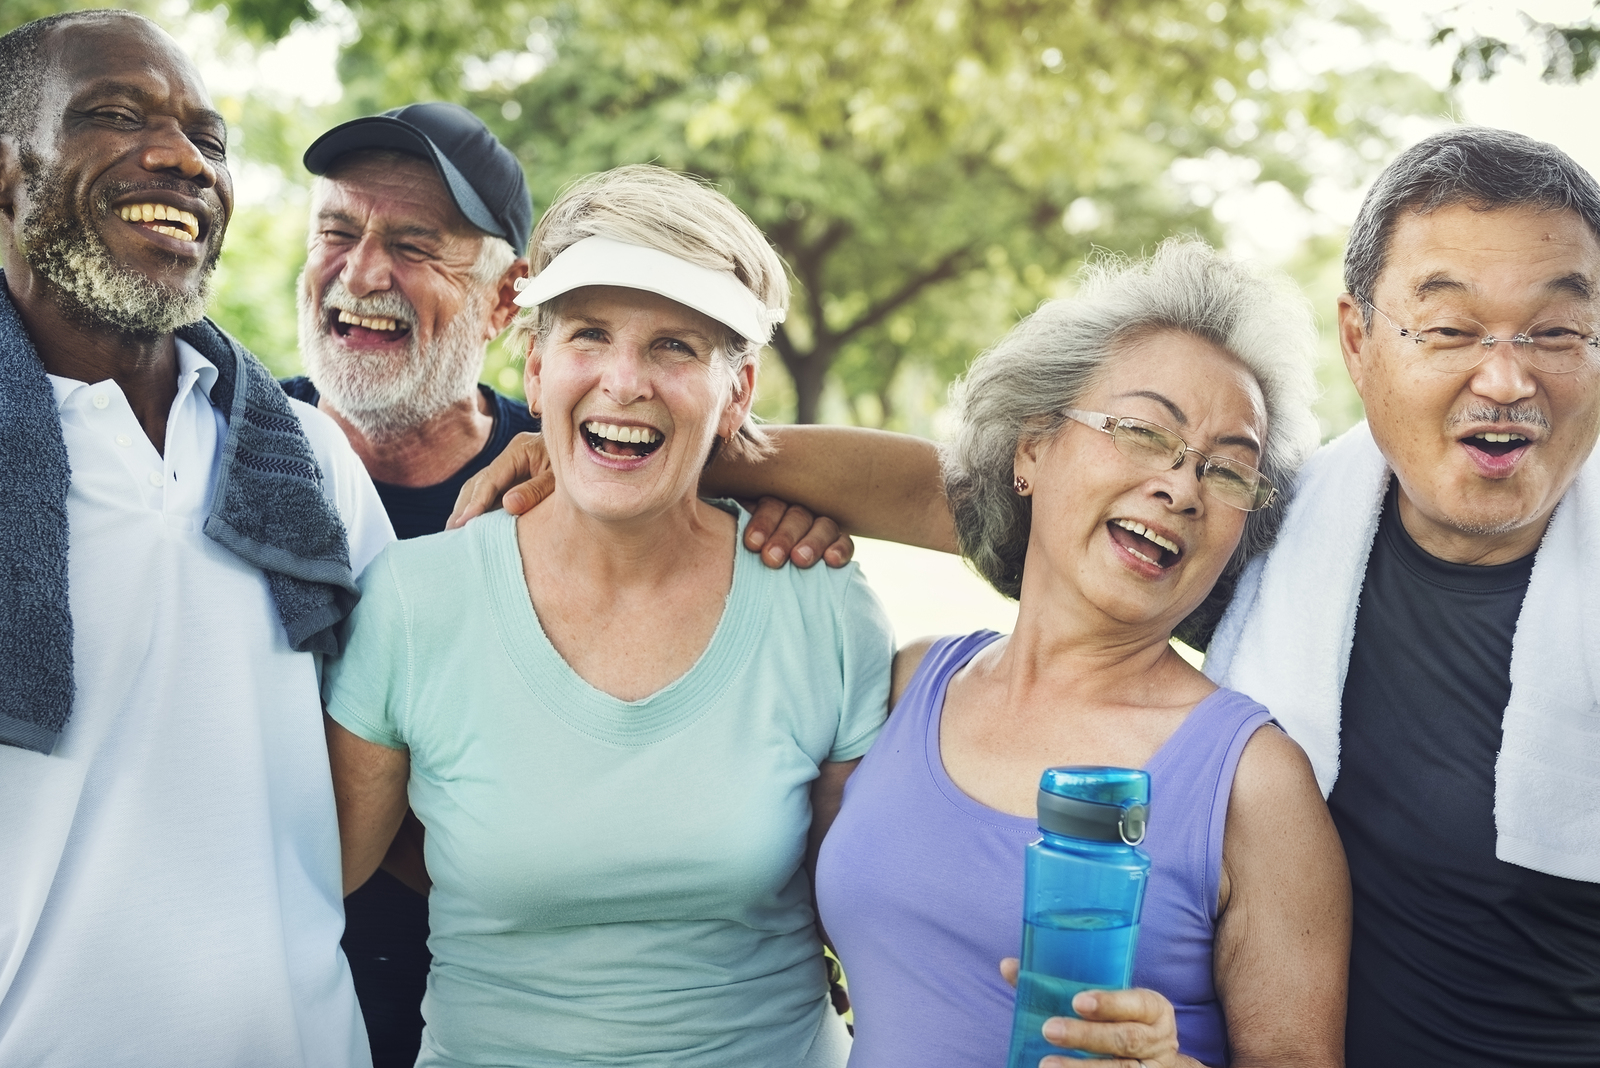 People 50 and up practicing their own wellbeing